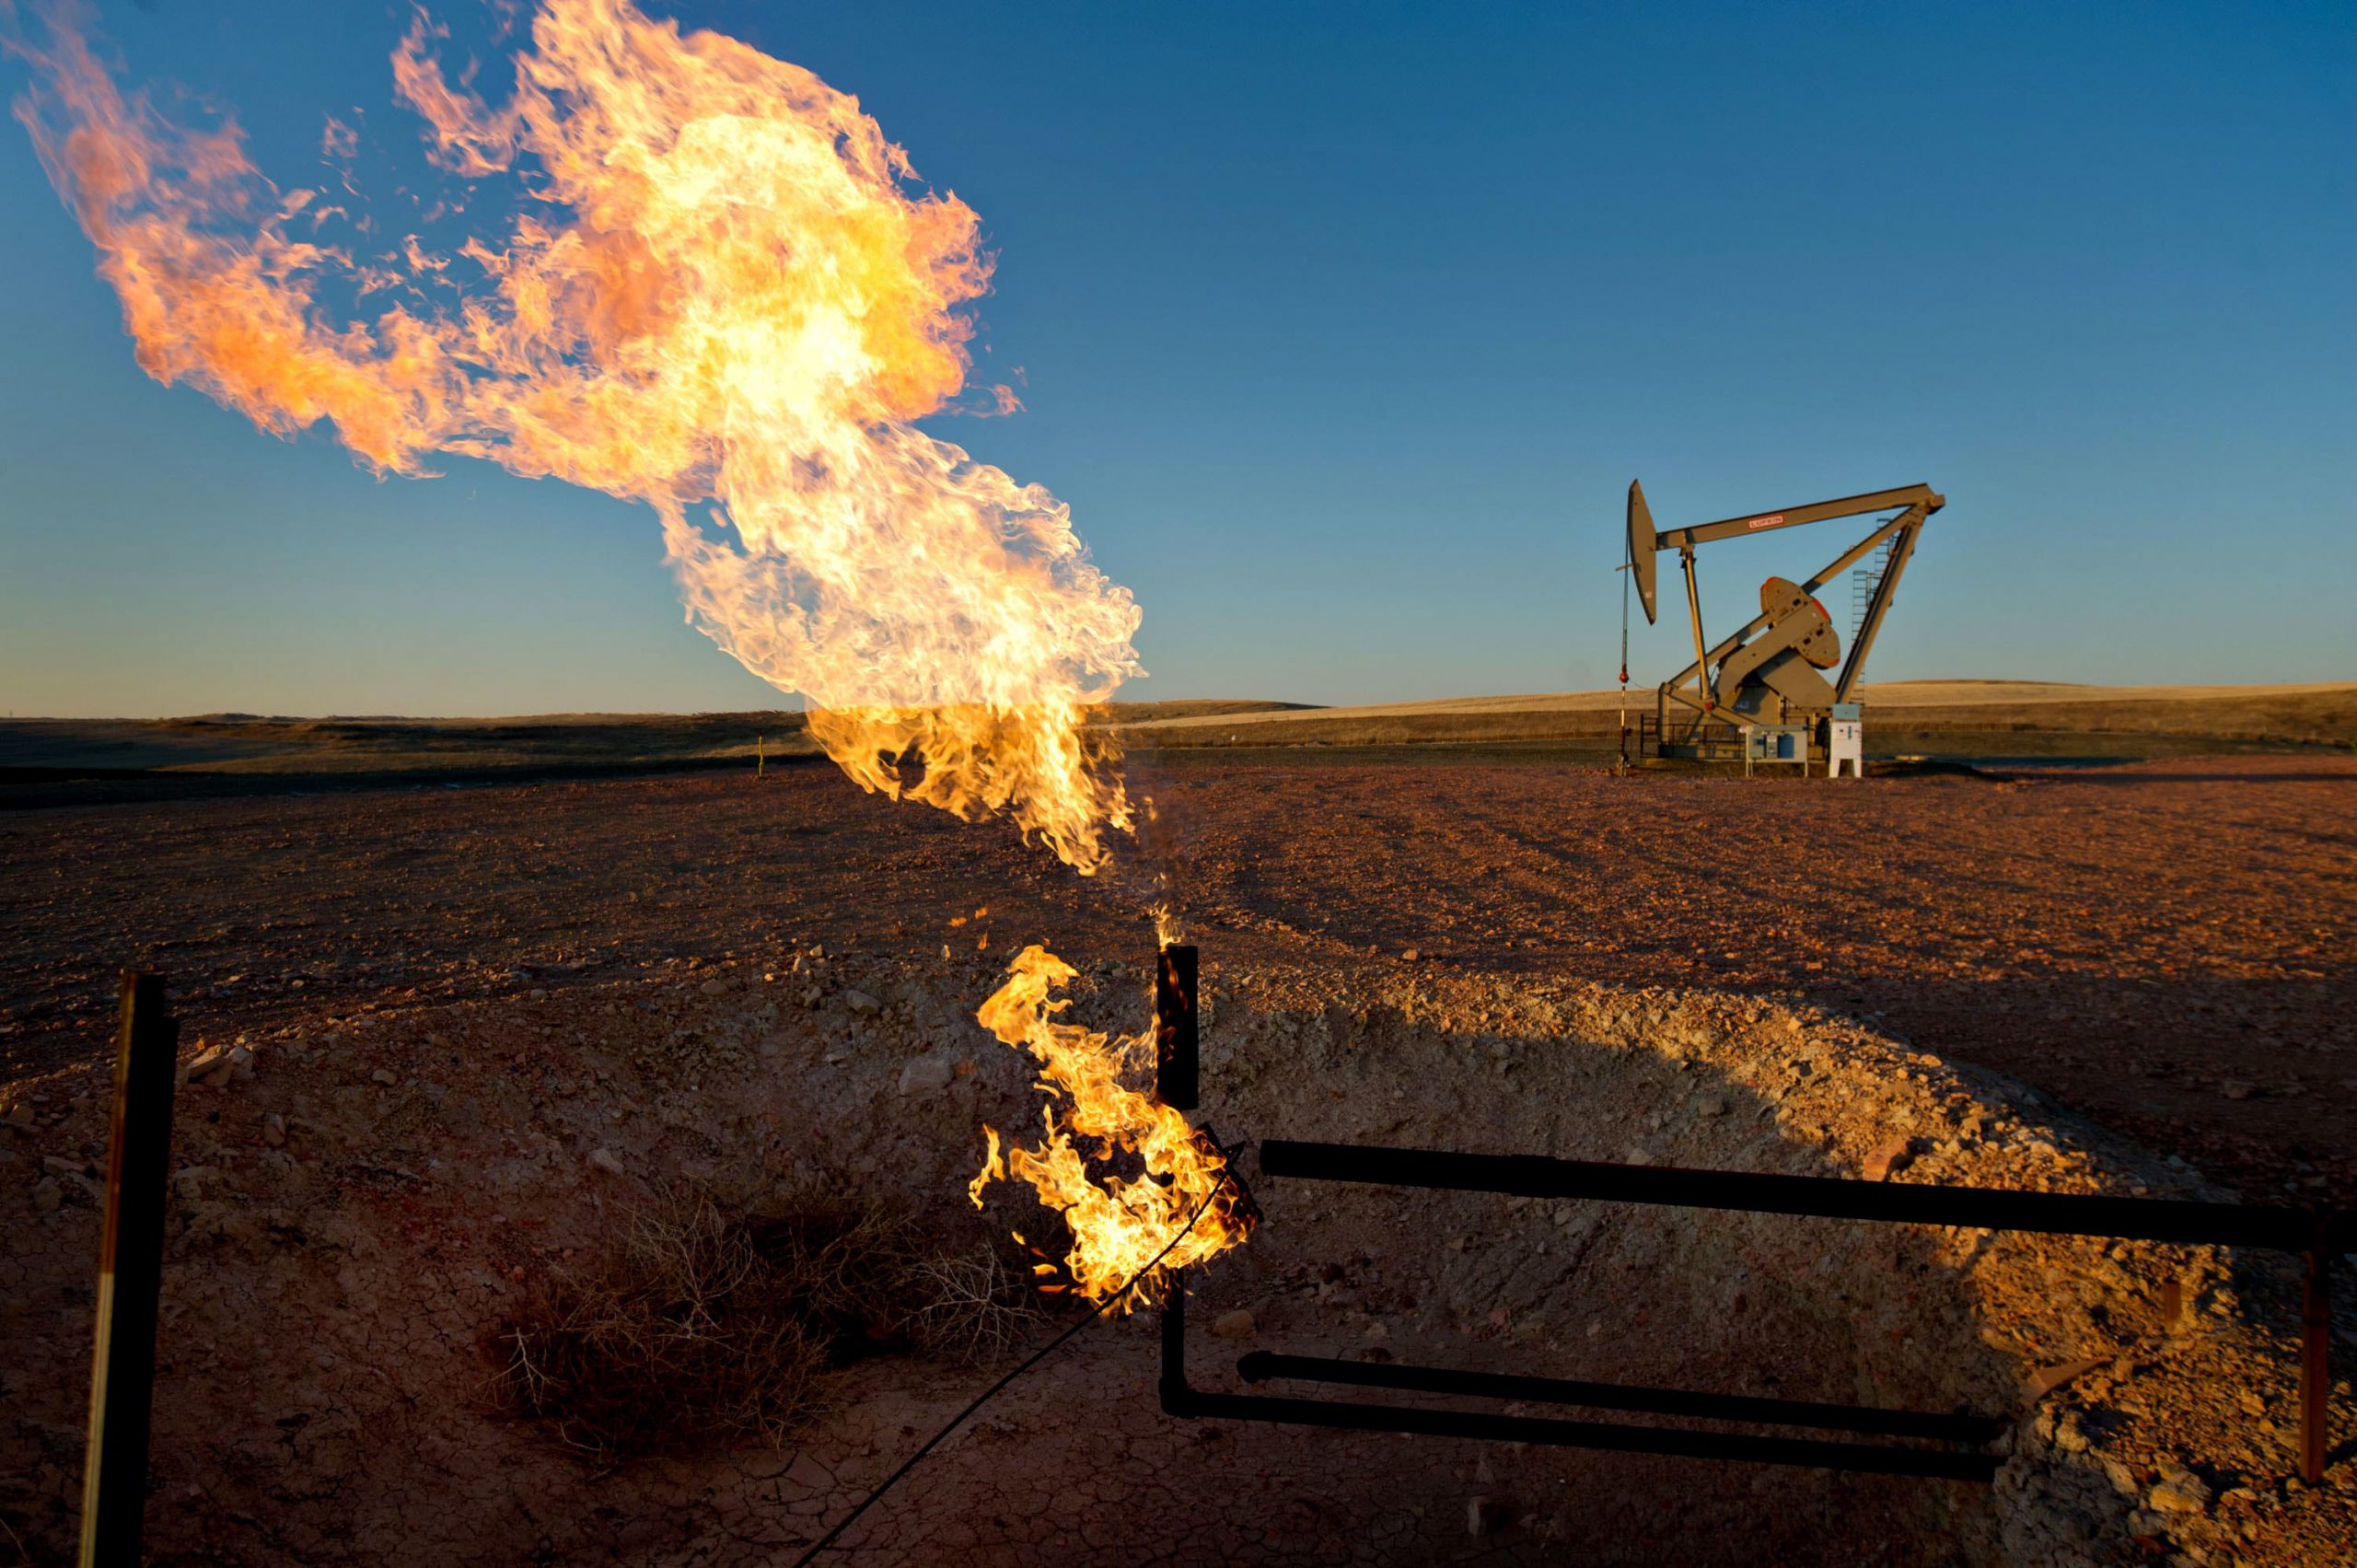 The oil industry shakeout is just beginning with more production cuts and bankruptcies ahead